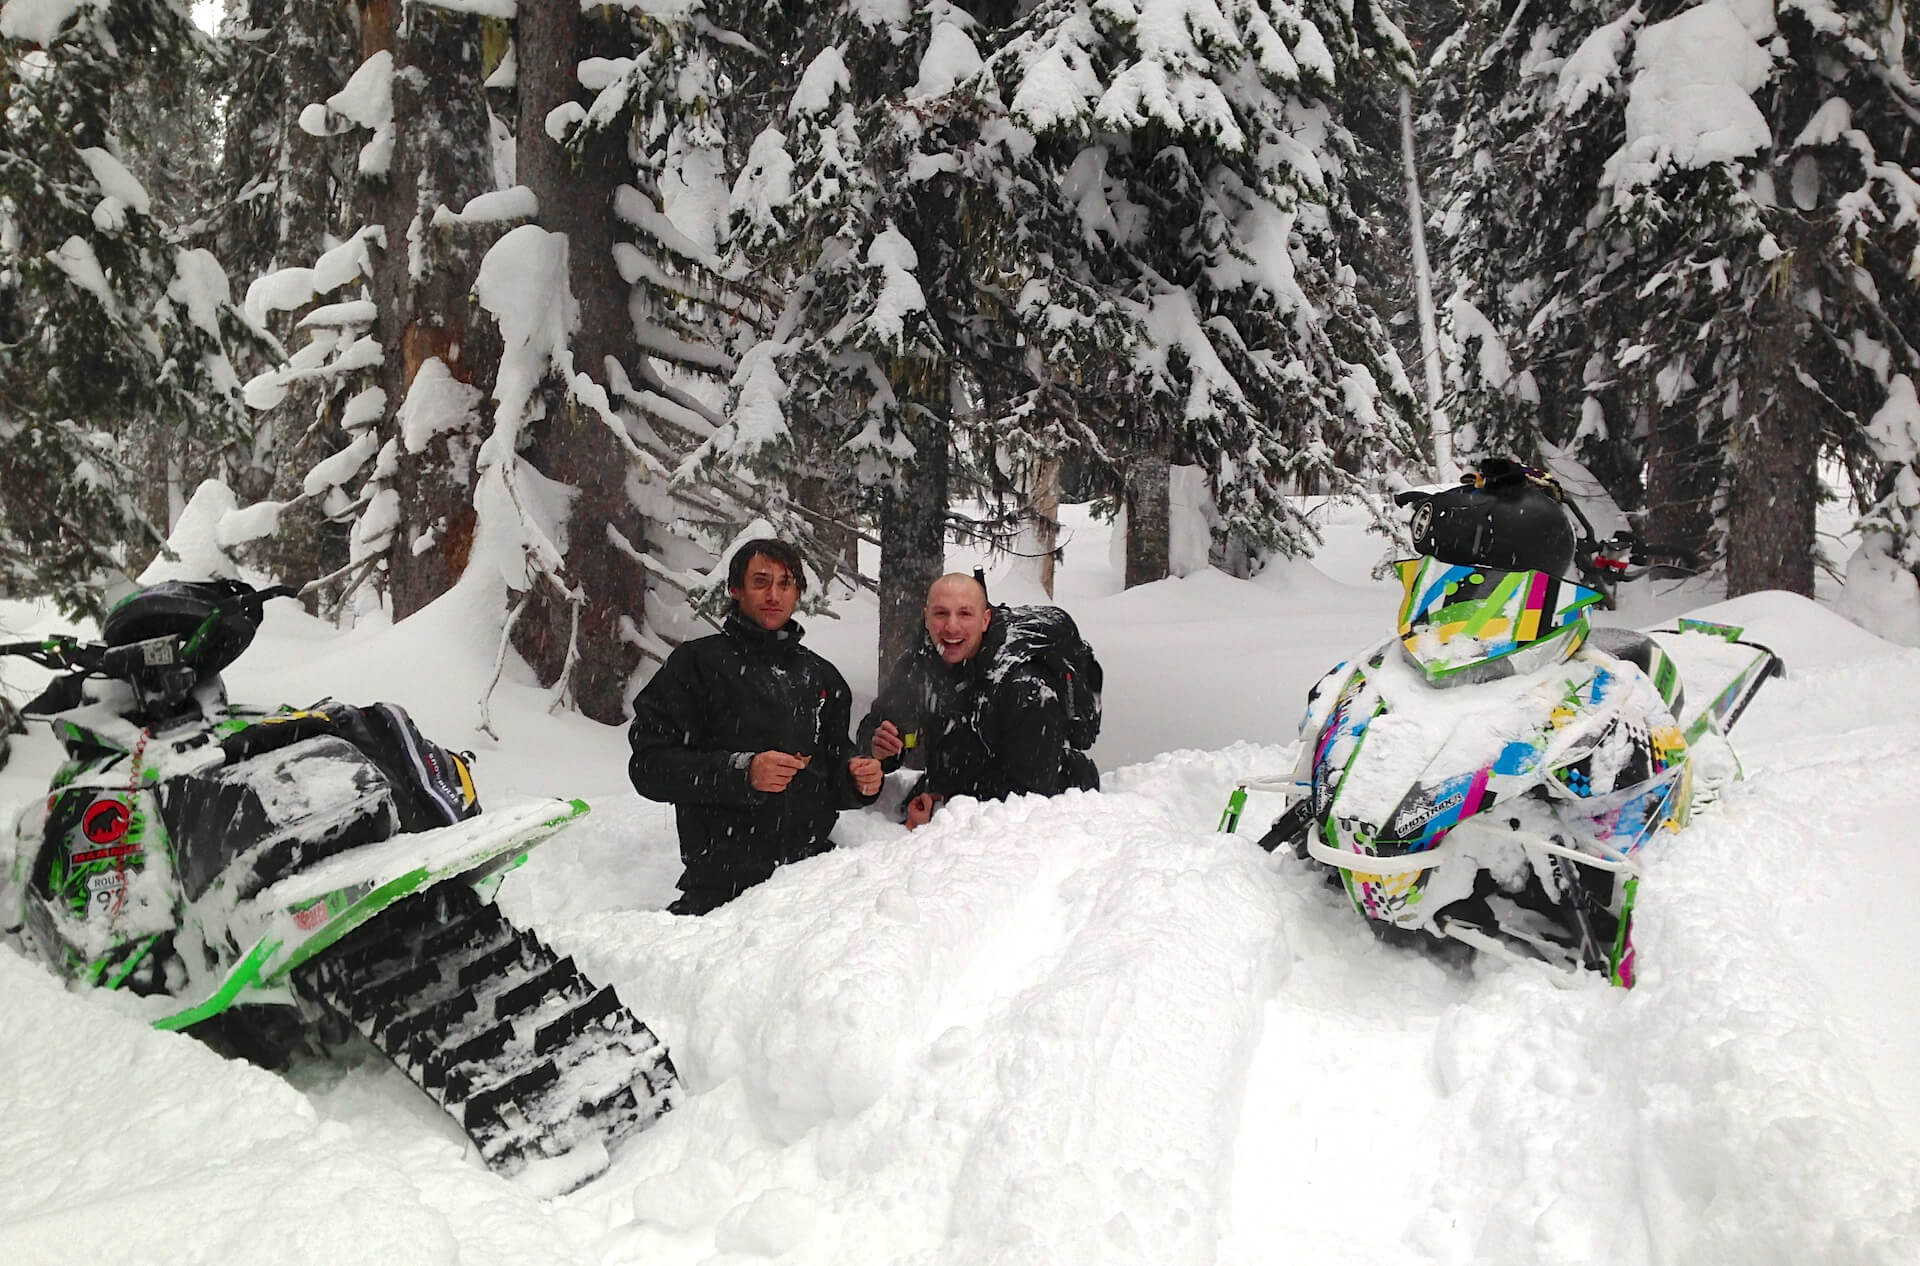 Just a couple of buds, hanging out in waist deep pow.